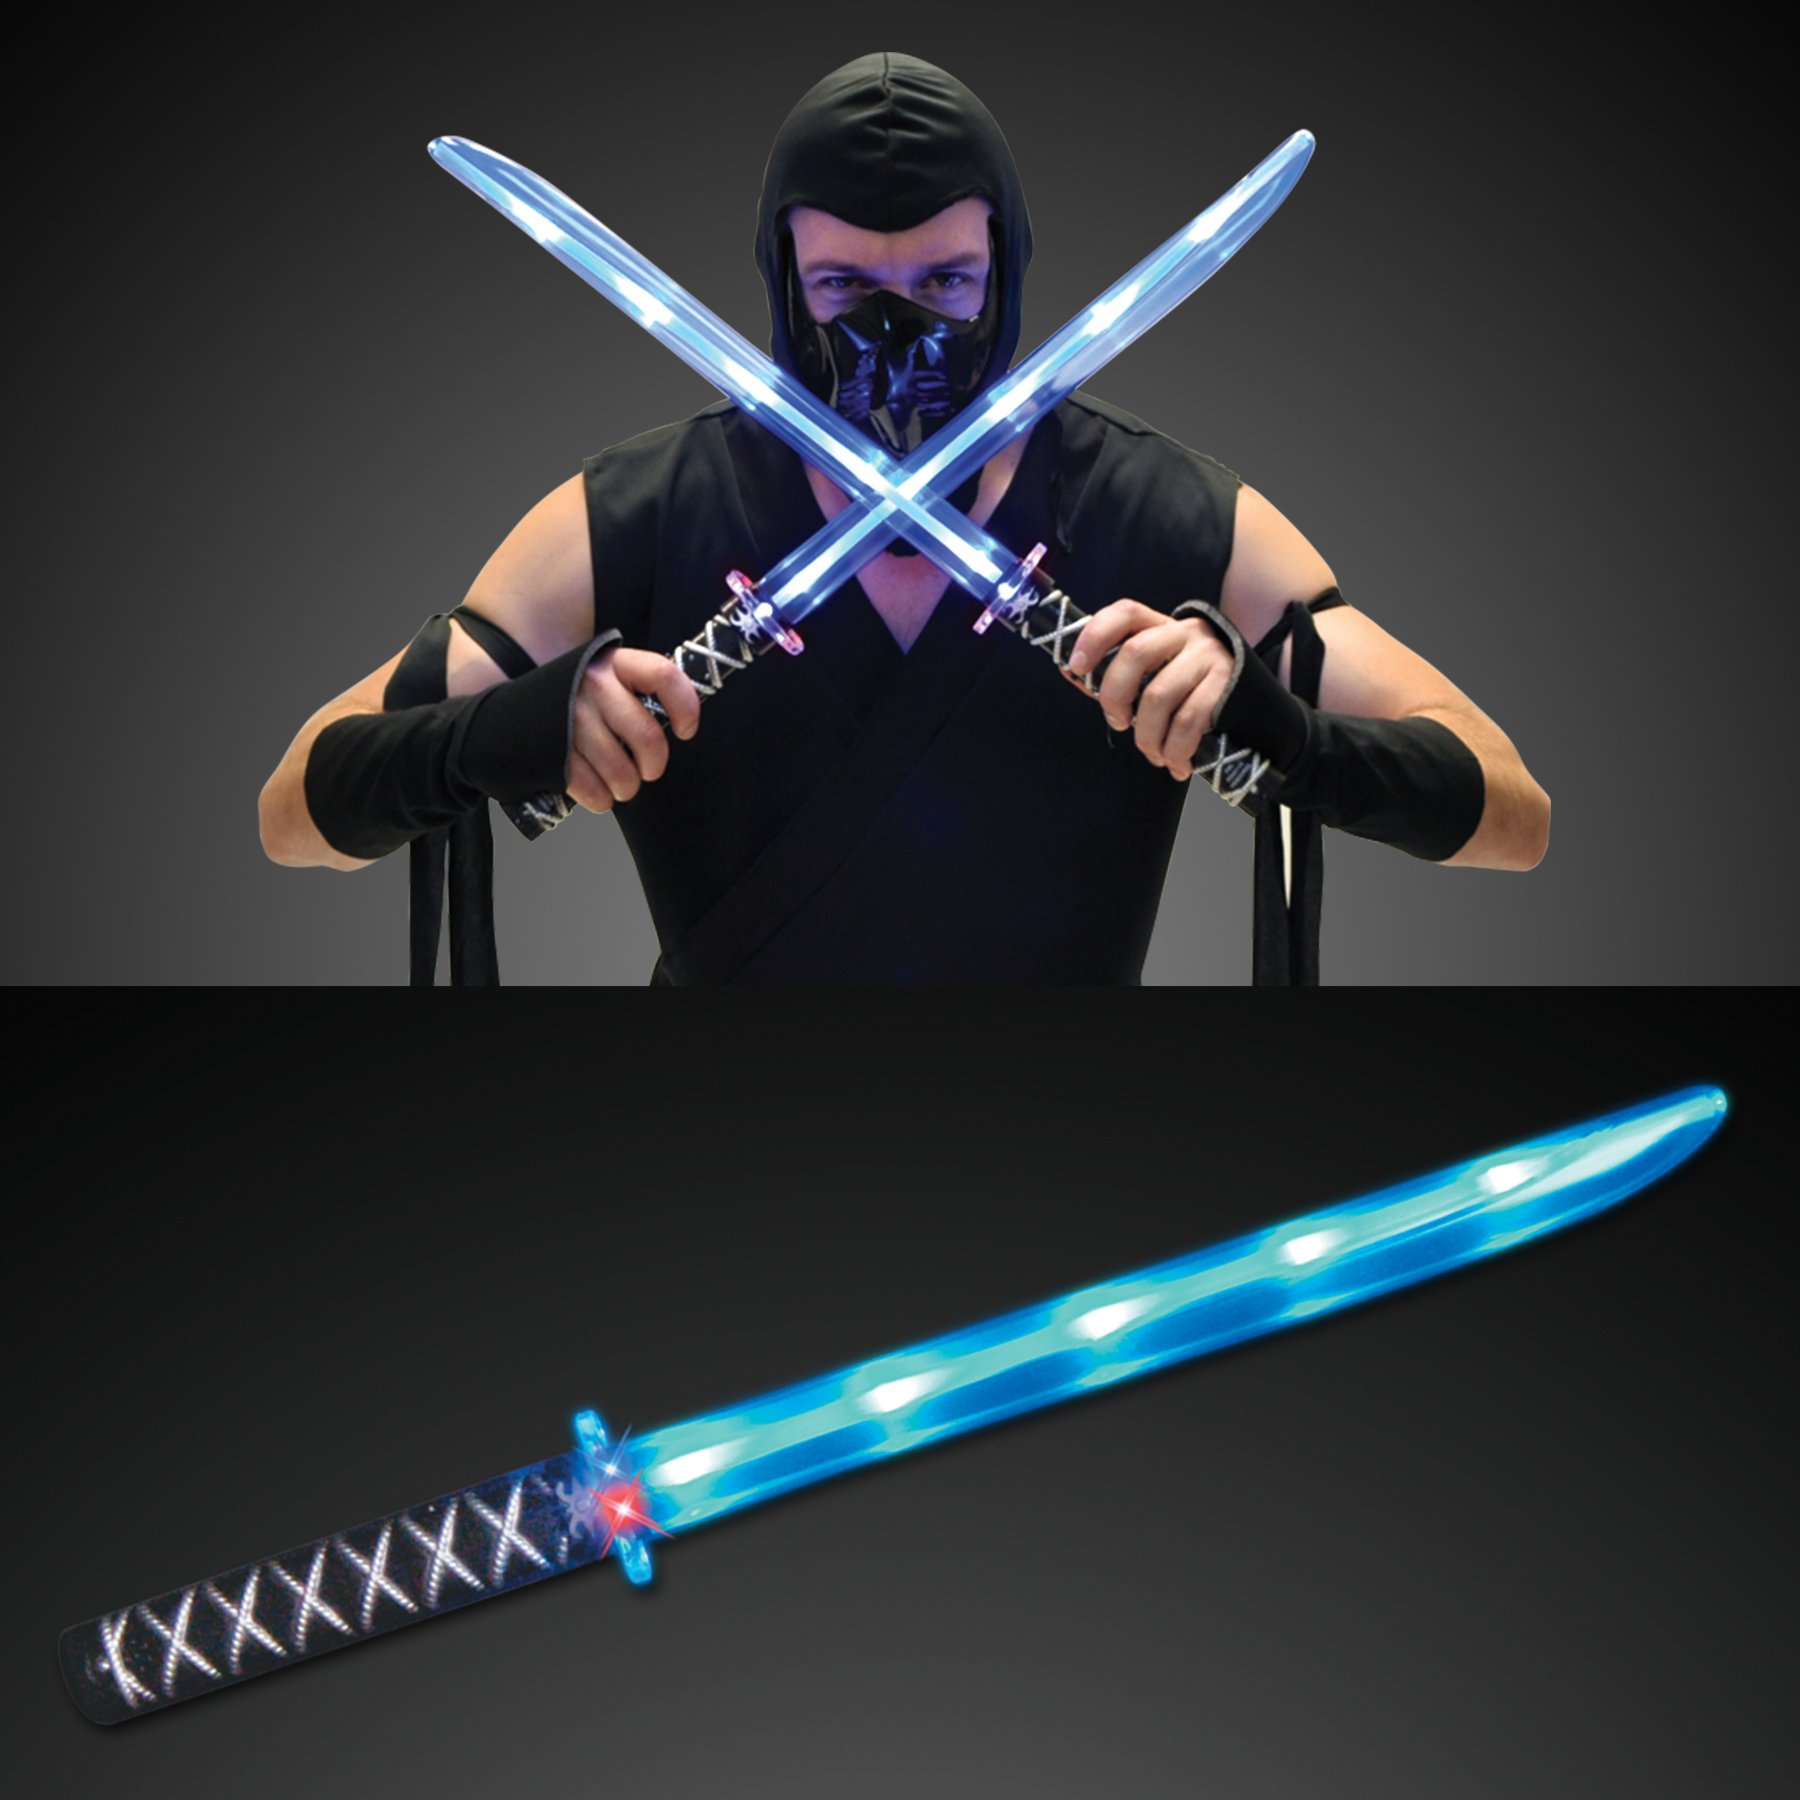 Deluxe Ninja LED Light up Sword with Motion Activated Clanging Sounds by FlashingBlinkyLights (Image #1)